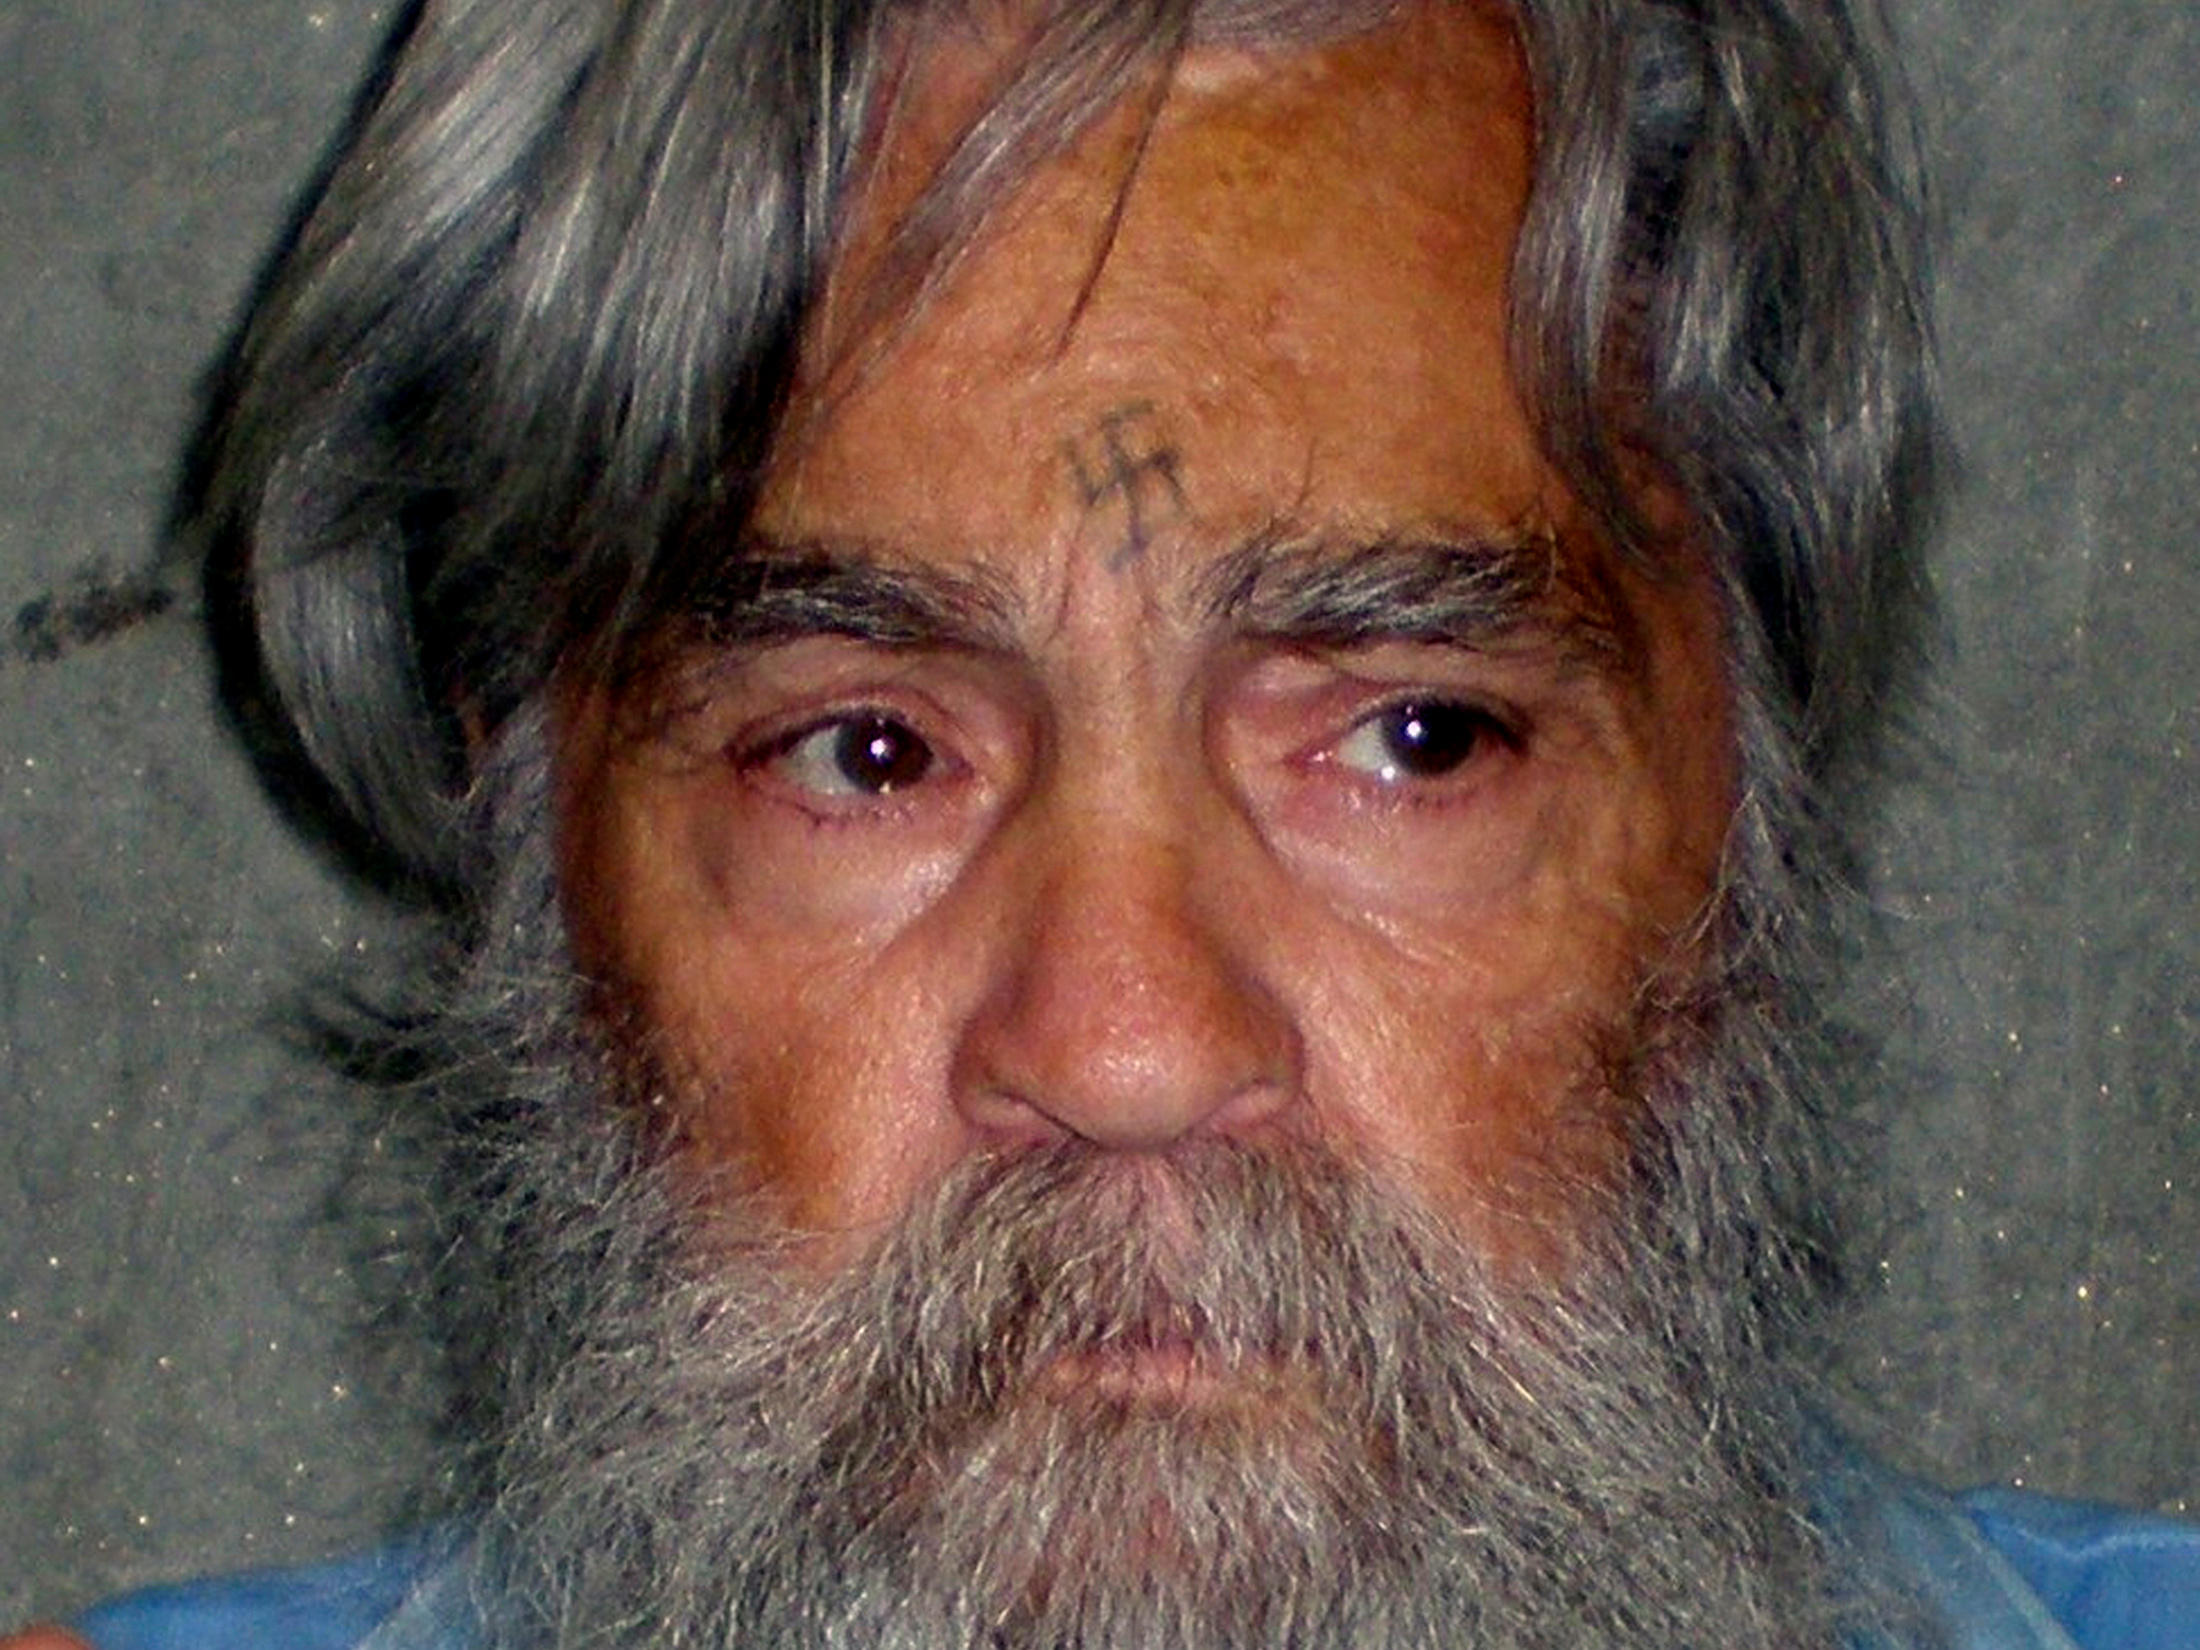 officials confirm charles manson alive after hospitalization reports  officials confirm charles manson alive after hospitalization reports